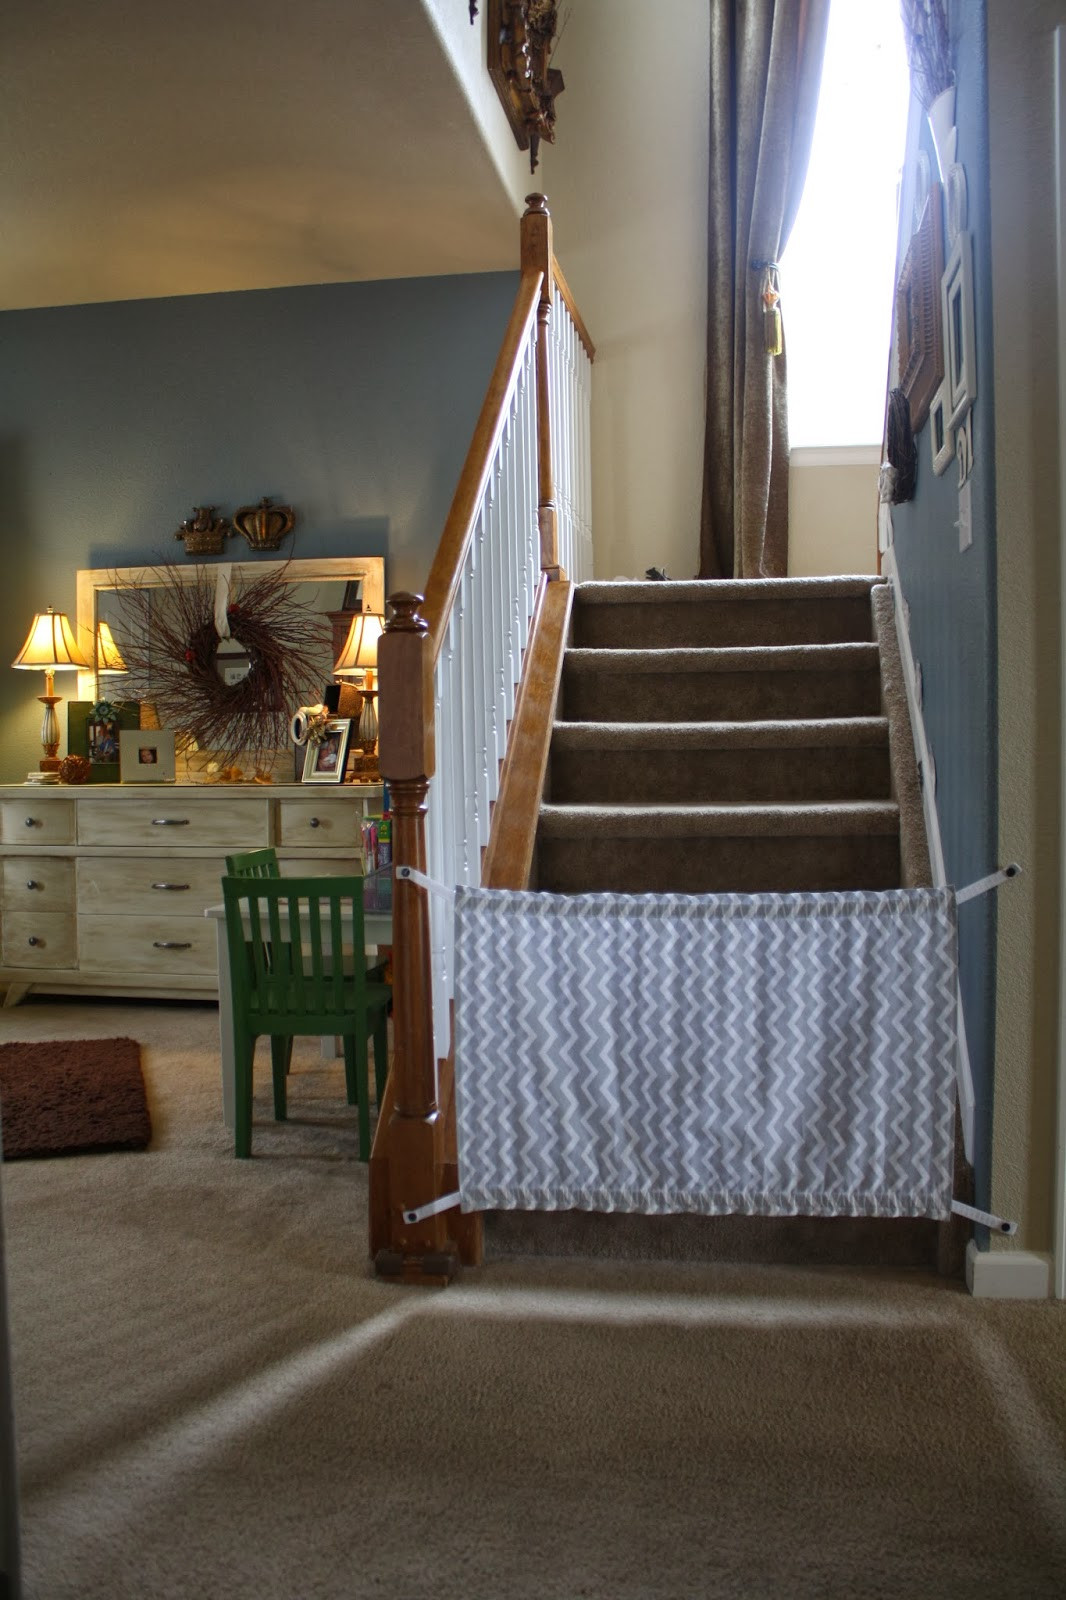 Best ideas about Baby Gate DIY . Save or Pin McCash Family blog Homemade Baby Gate A Tutorial Now.